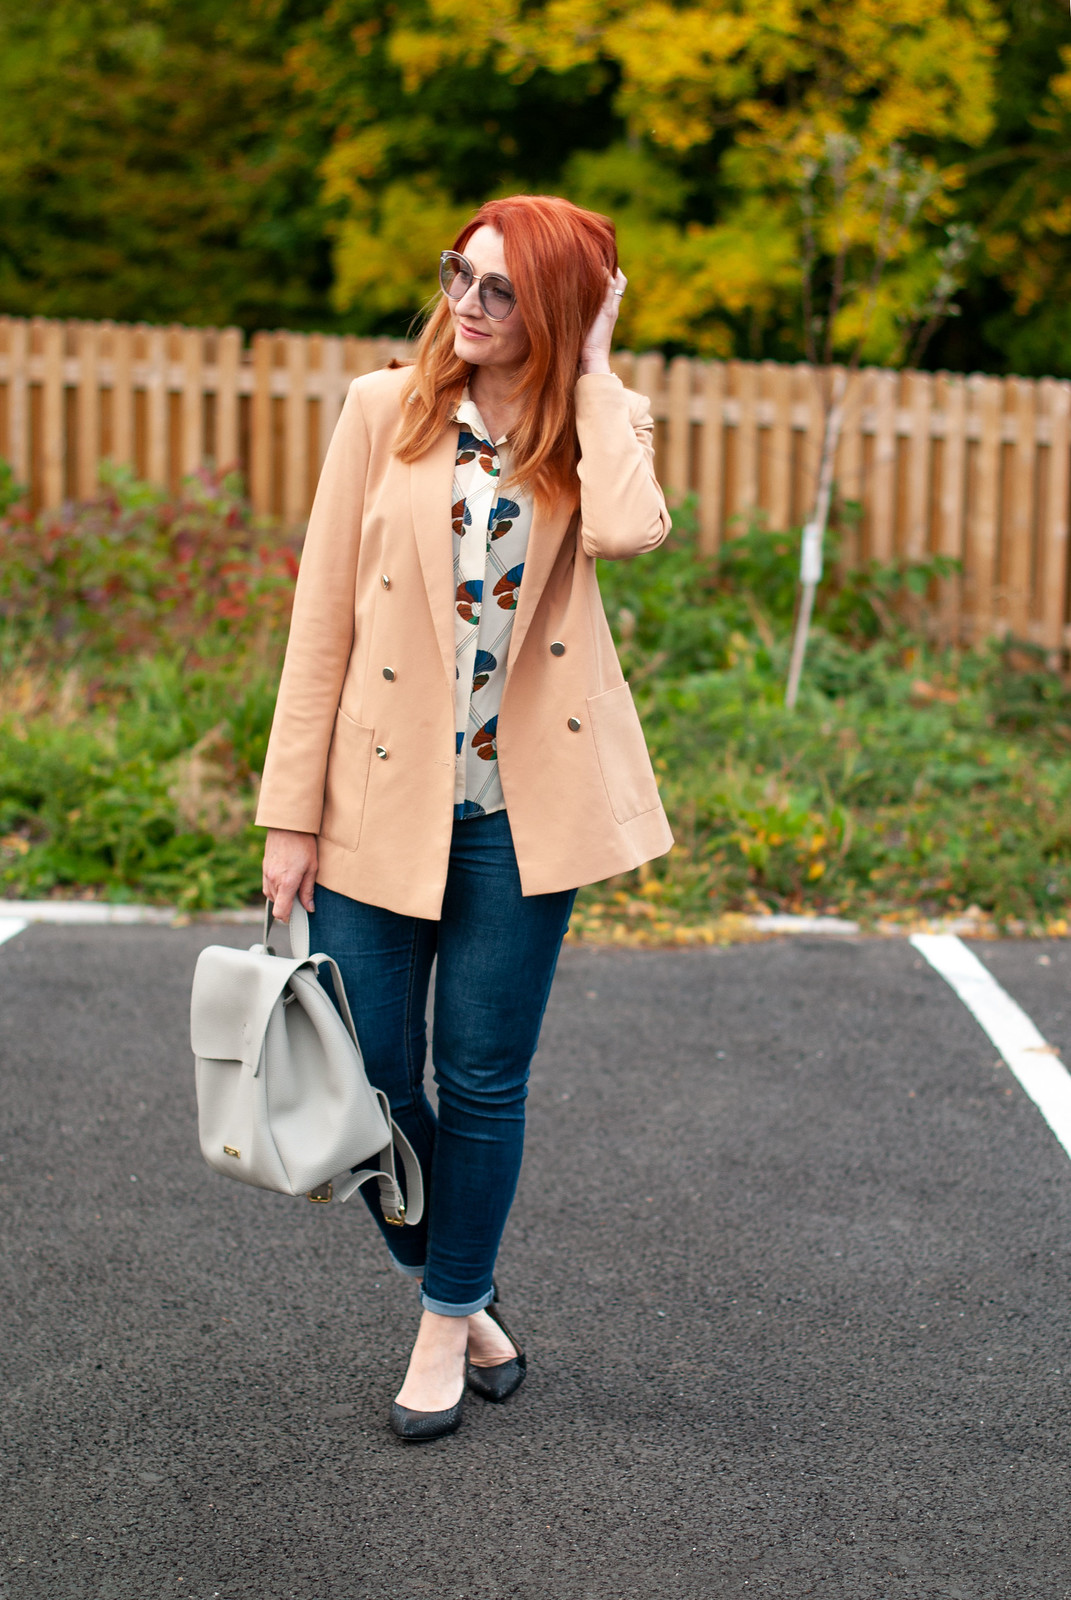 How to Make Jeans Smart for an Informal Meeting \ camel blazer \ dark wash skinny jeans \ patterned blouse \ block heel black shoes \ light grey backpack | Not Dressed As Lamb, over 40 style